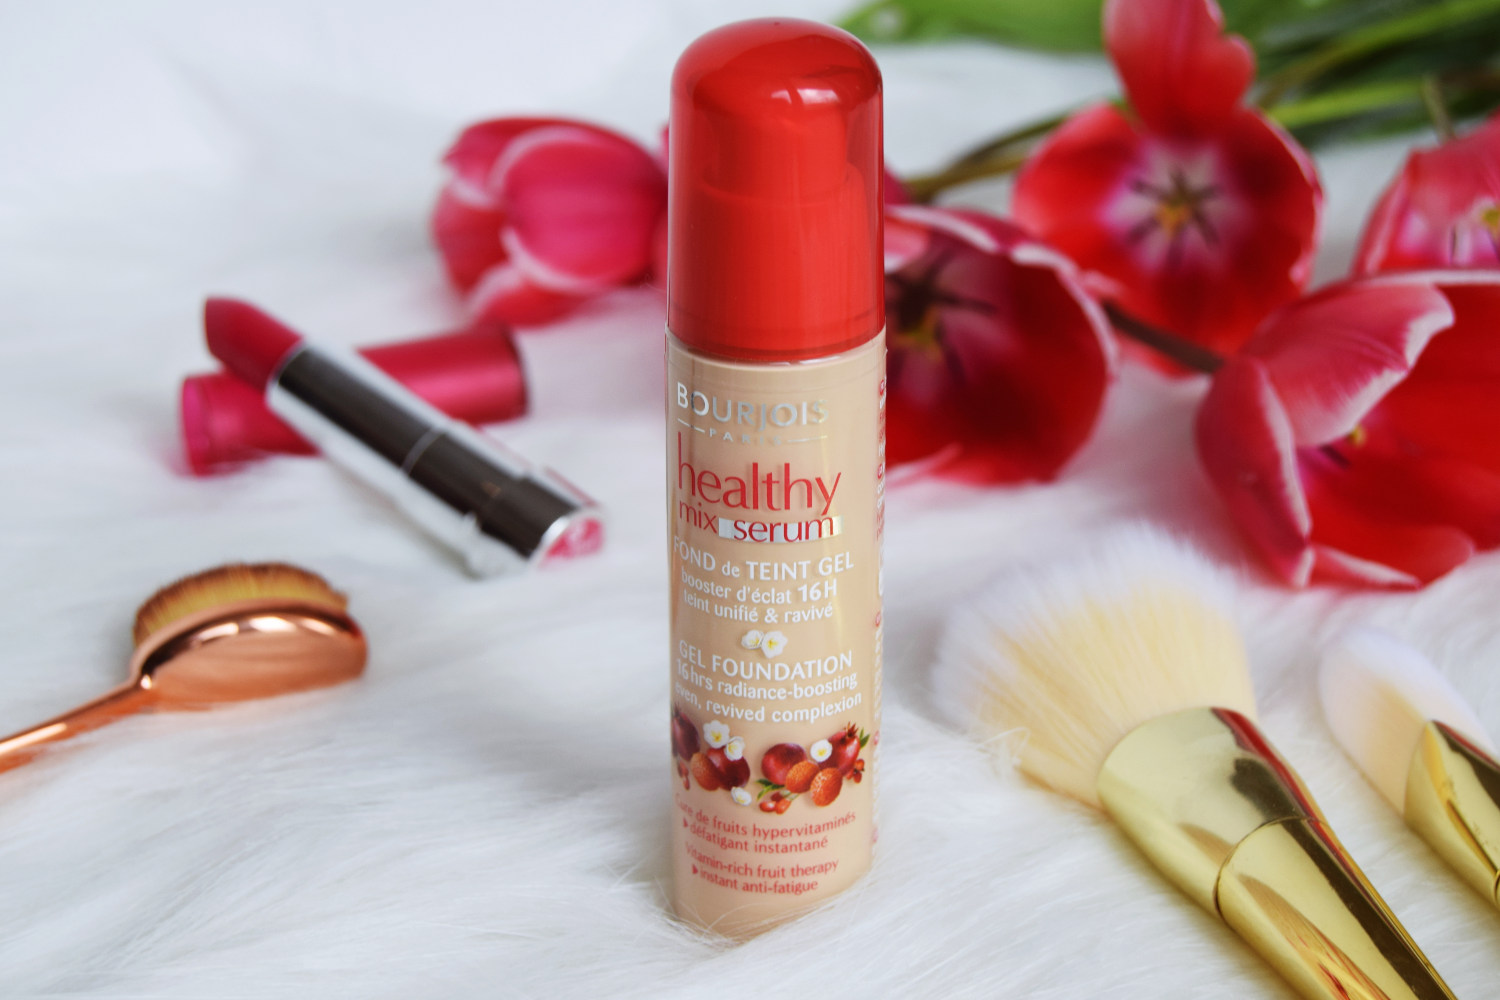 Bourjois_Paris_Healthy_mix_serum_review_Zalabell_beauty_1